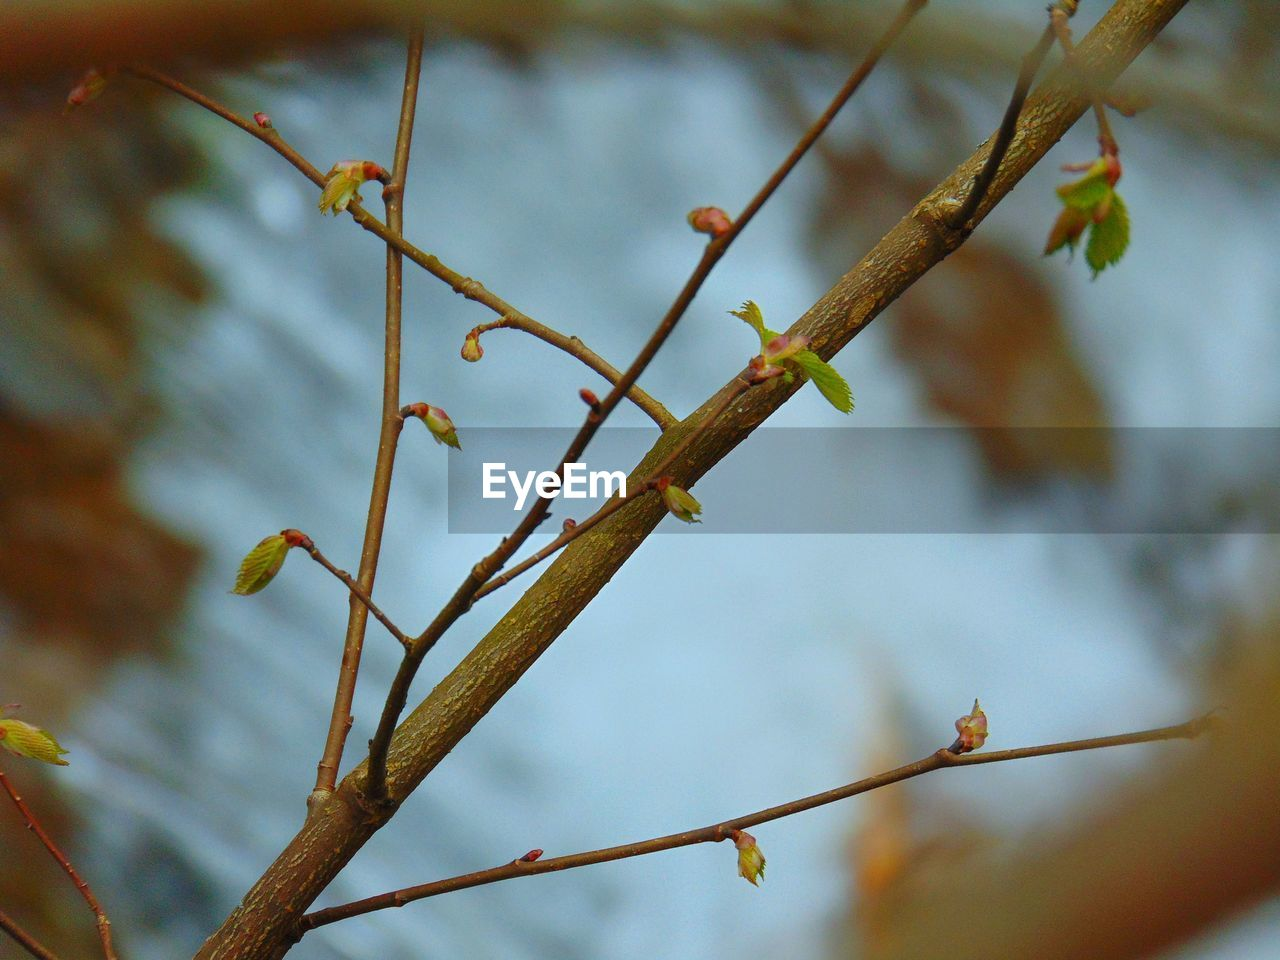 plant, focus on foreground, growth, no people, nature, day, close-up, tree, beauty in nature, branch, tranquility, twig, outdoors, selective focus, plant stem, low angle view, flower, leaf, plant part, beginnings, stick - plant part